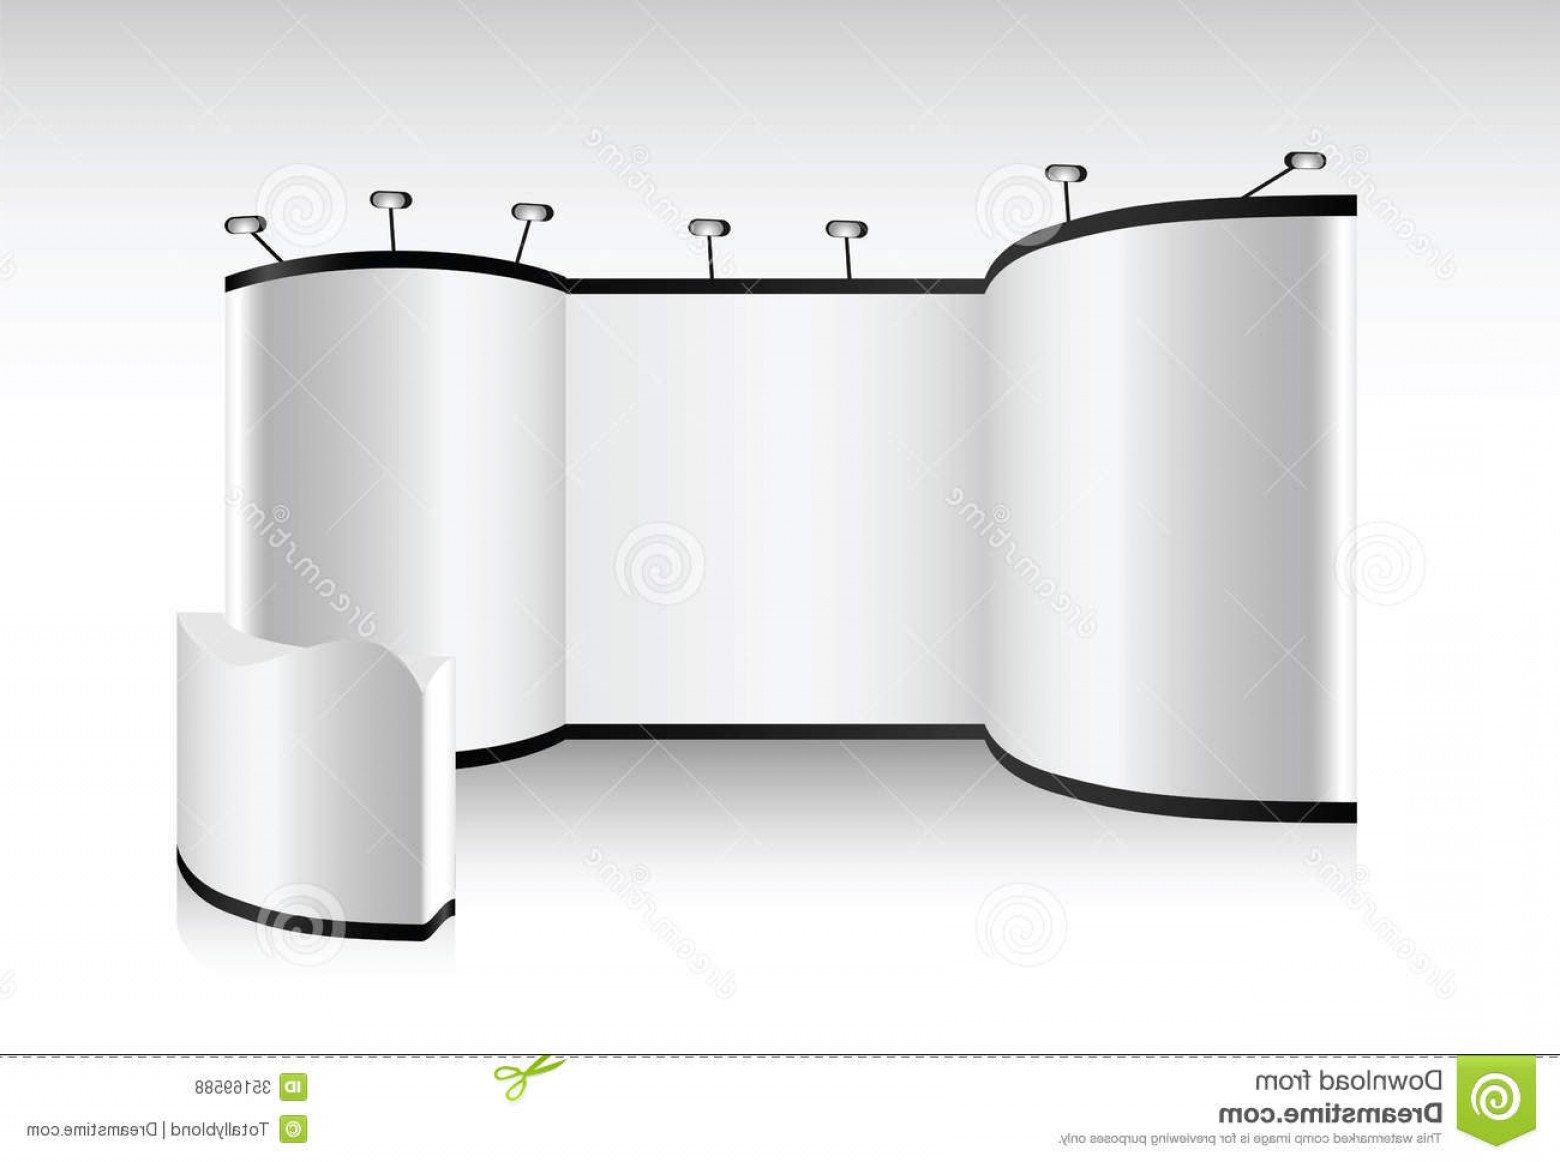 Commercial Booth Vector: Royalty Free Stock Photos Vector Blank Trade Show Booth Designers Advertising Image